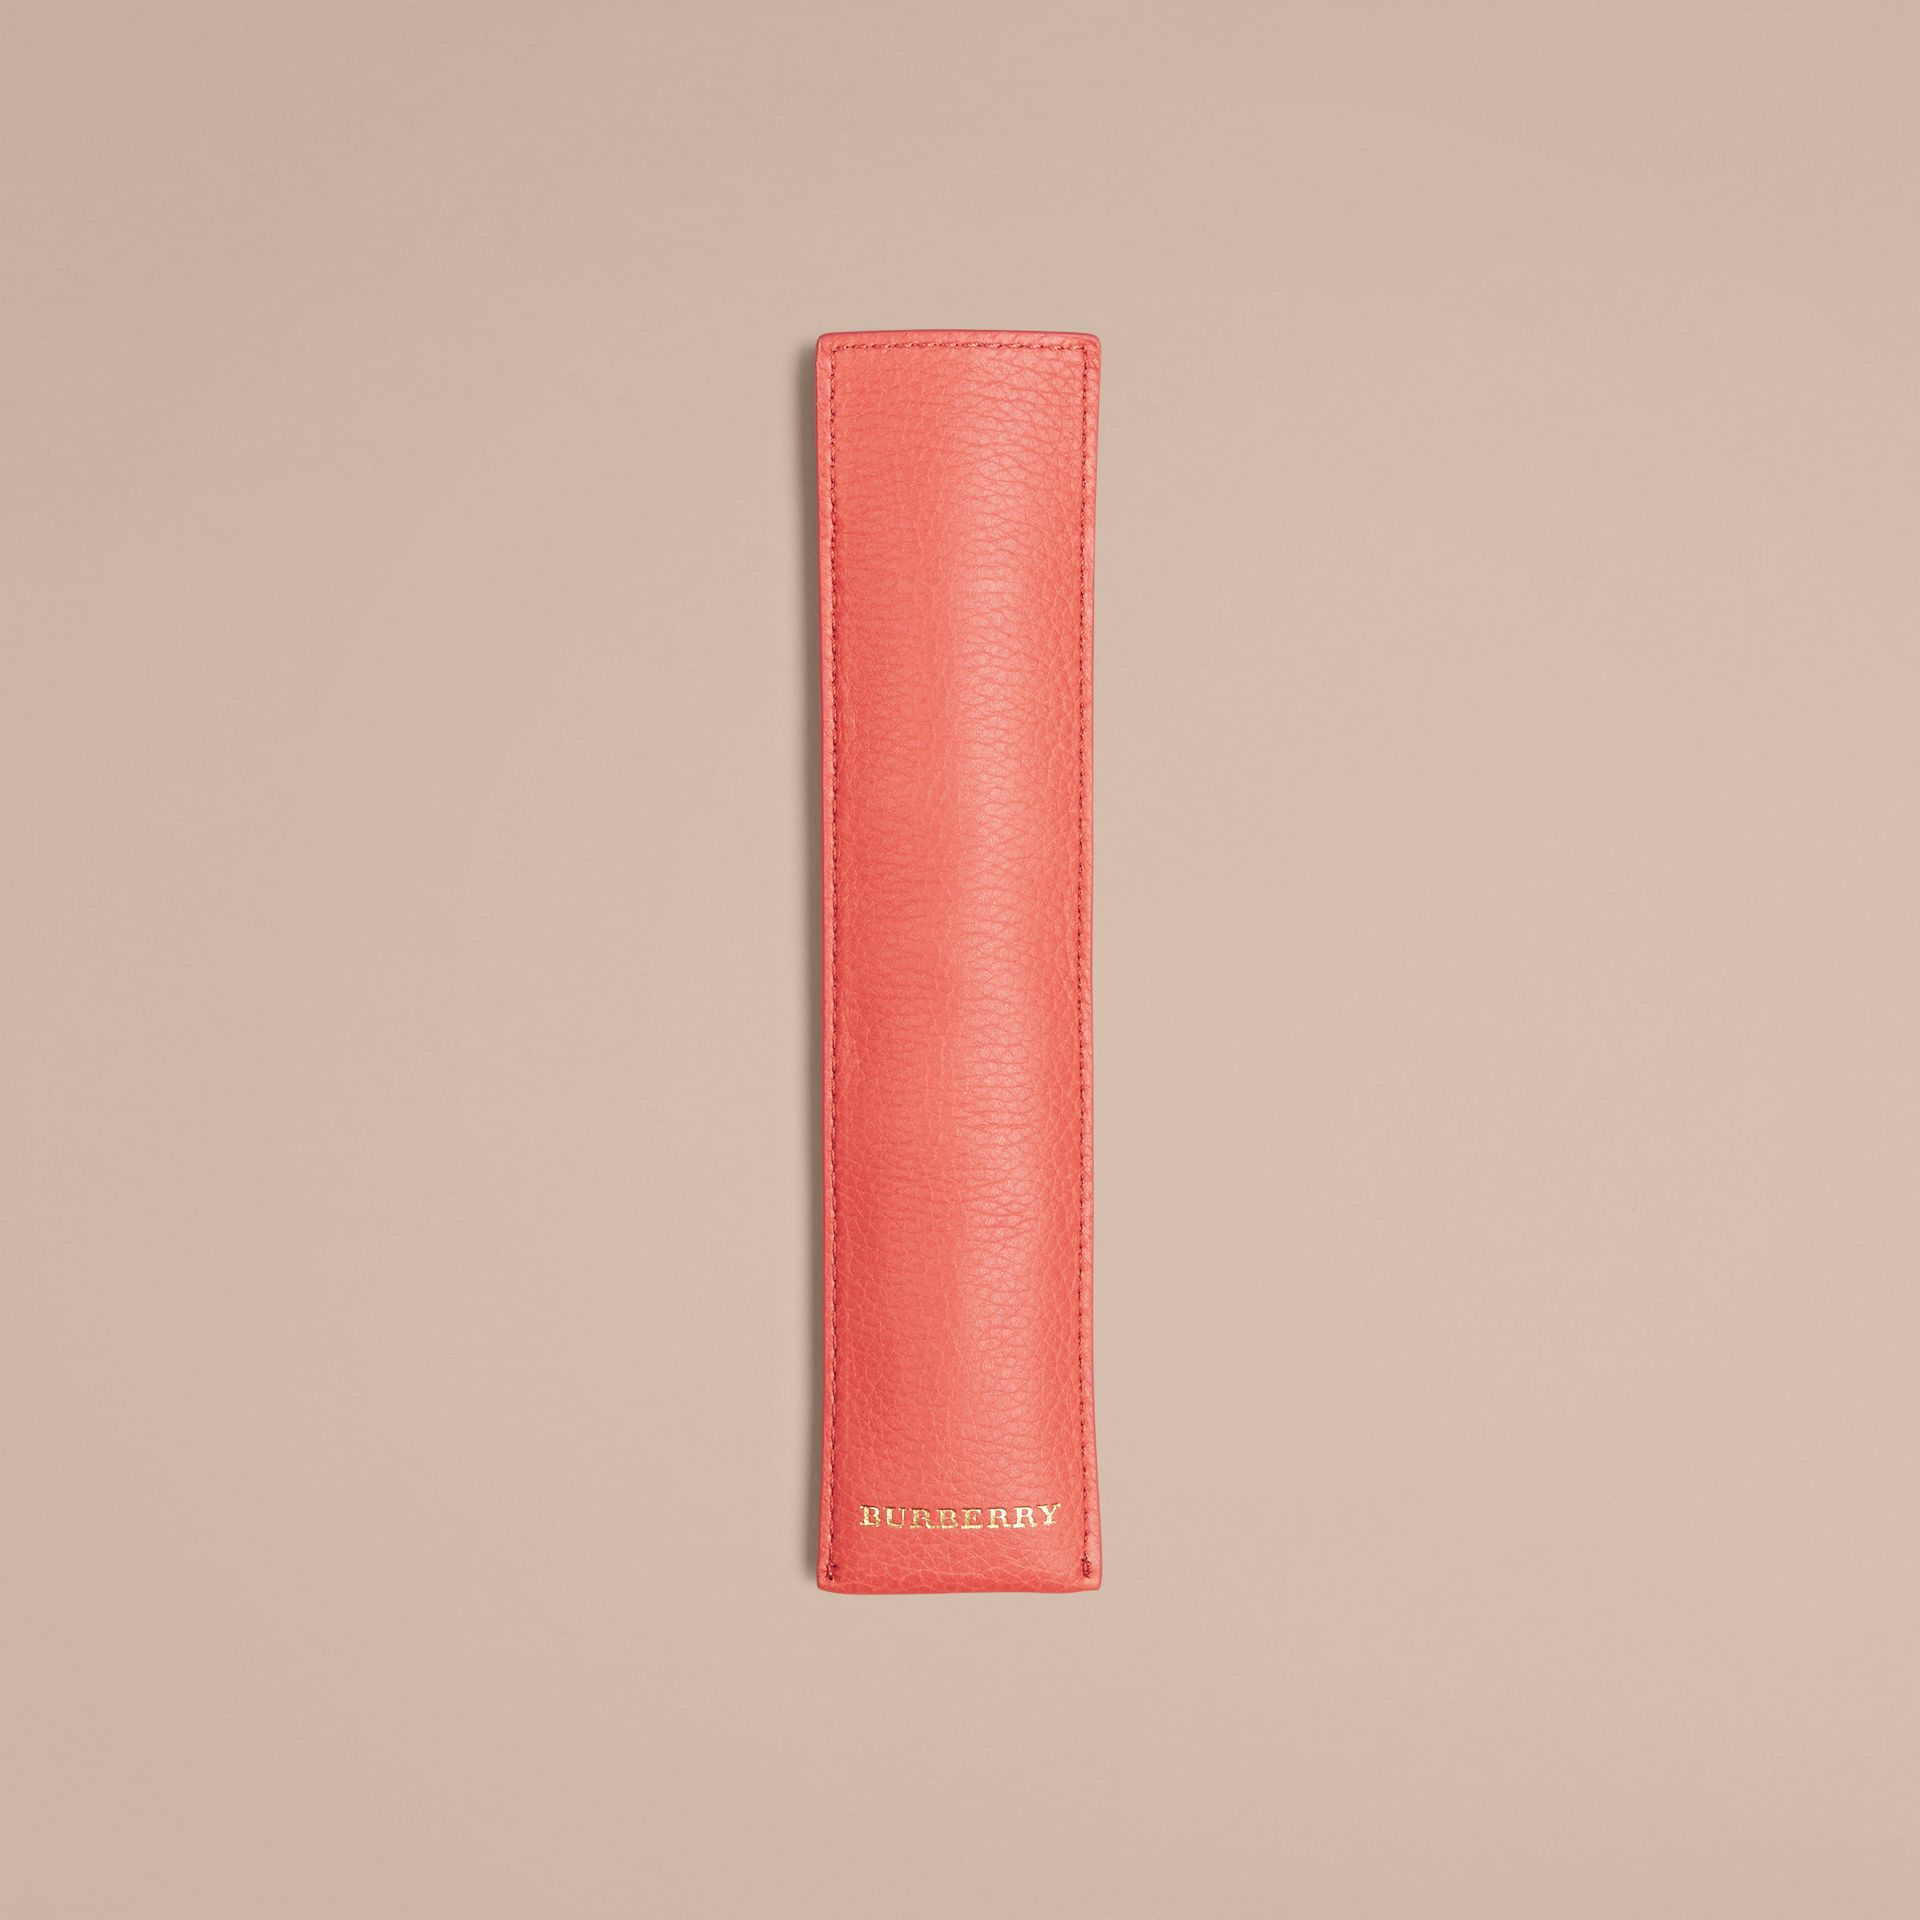 Grainy Leather Pencil Sleeve in Bright Peony | Burberry - gallery image 4